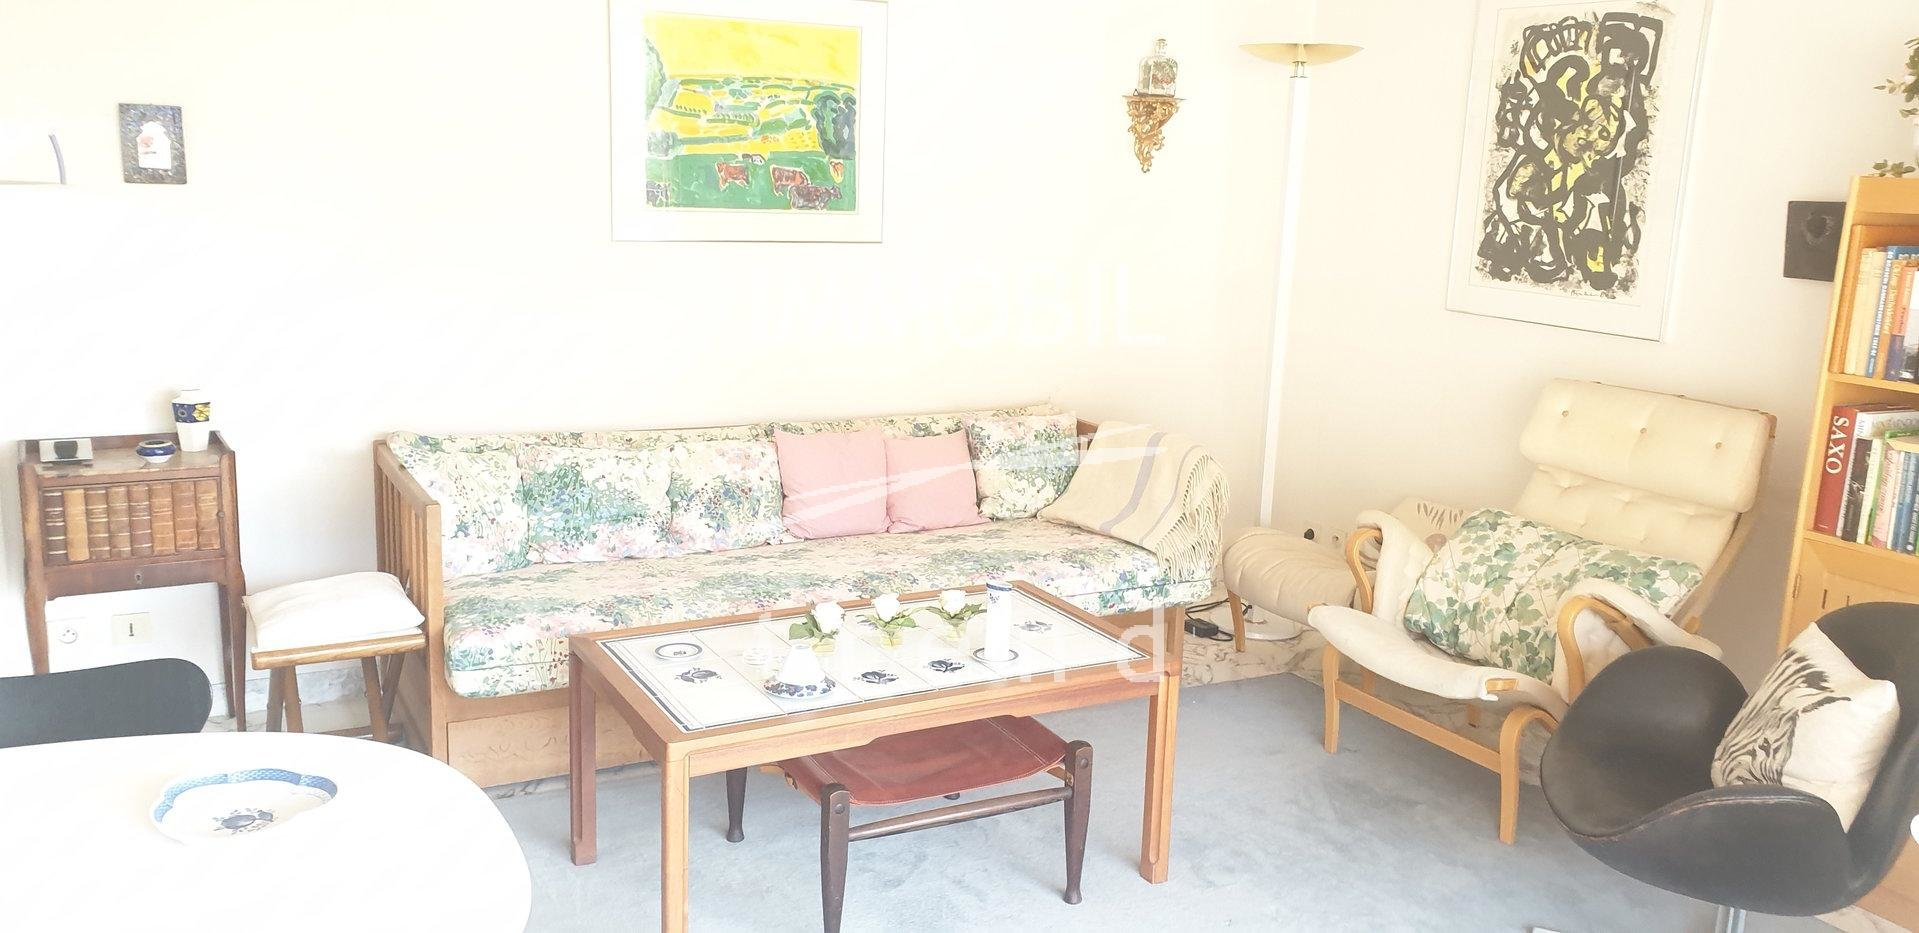 EXCLUSIVITY BEAUTIFUL 3 ROOMS APARTMENT WITH BALCONY AND PARKING